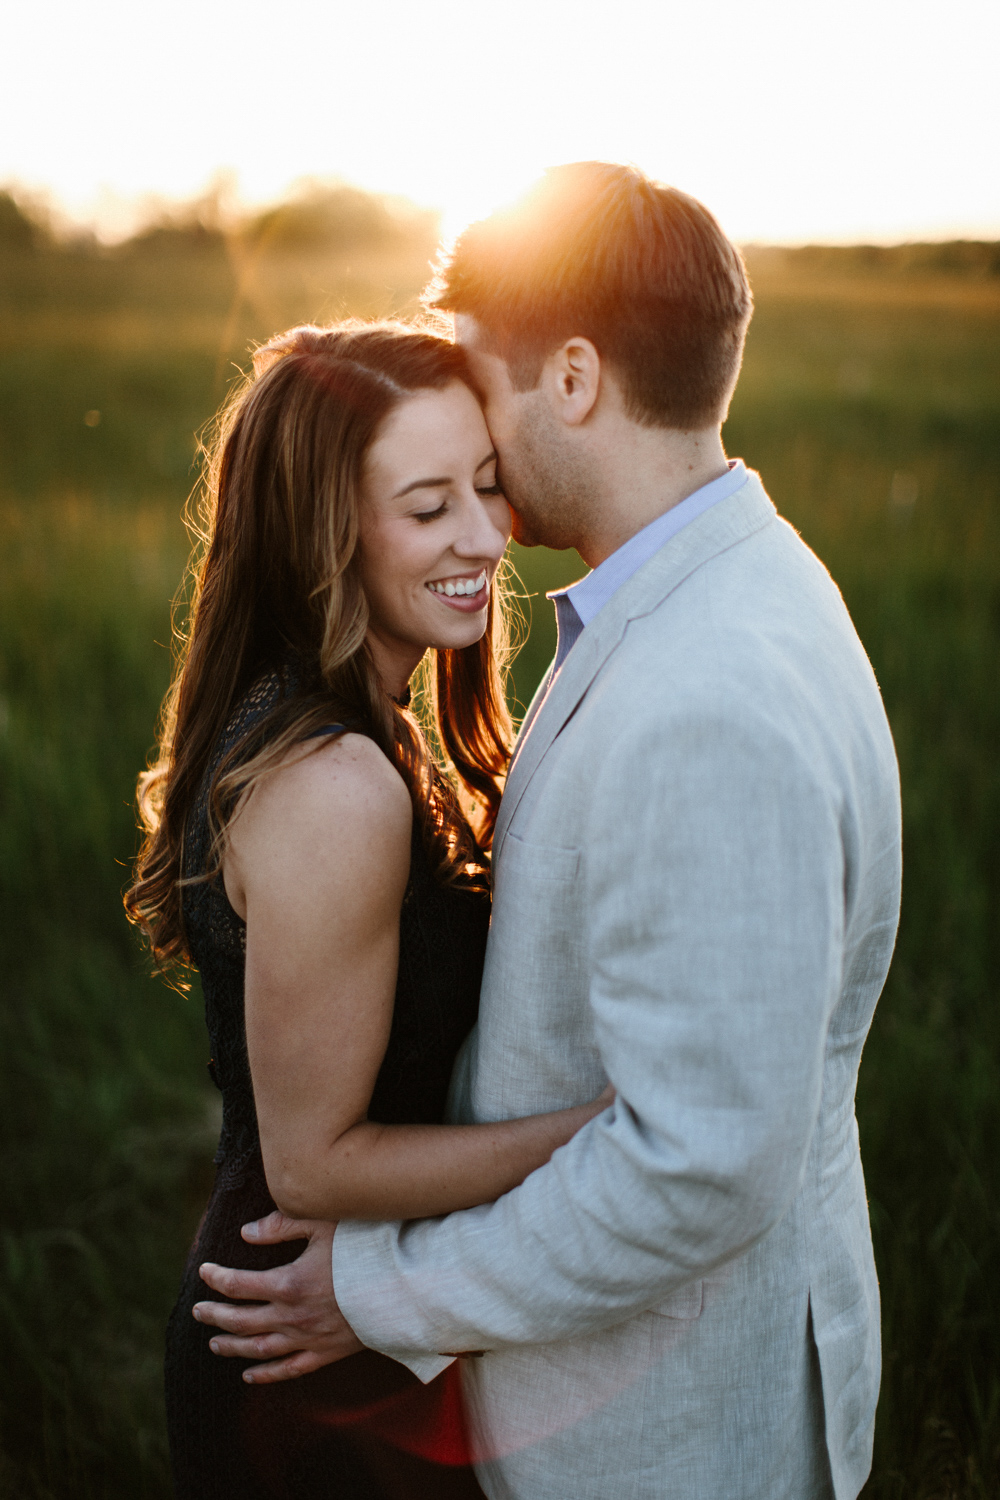 Des_Moines_Sioux_Falls_Wedding_Photographer_Renae&Adam50.jpg